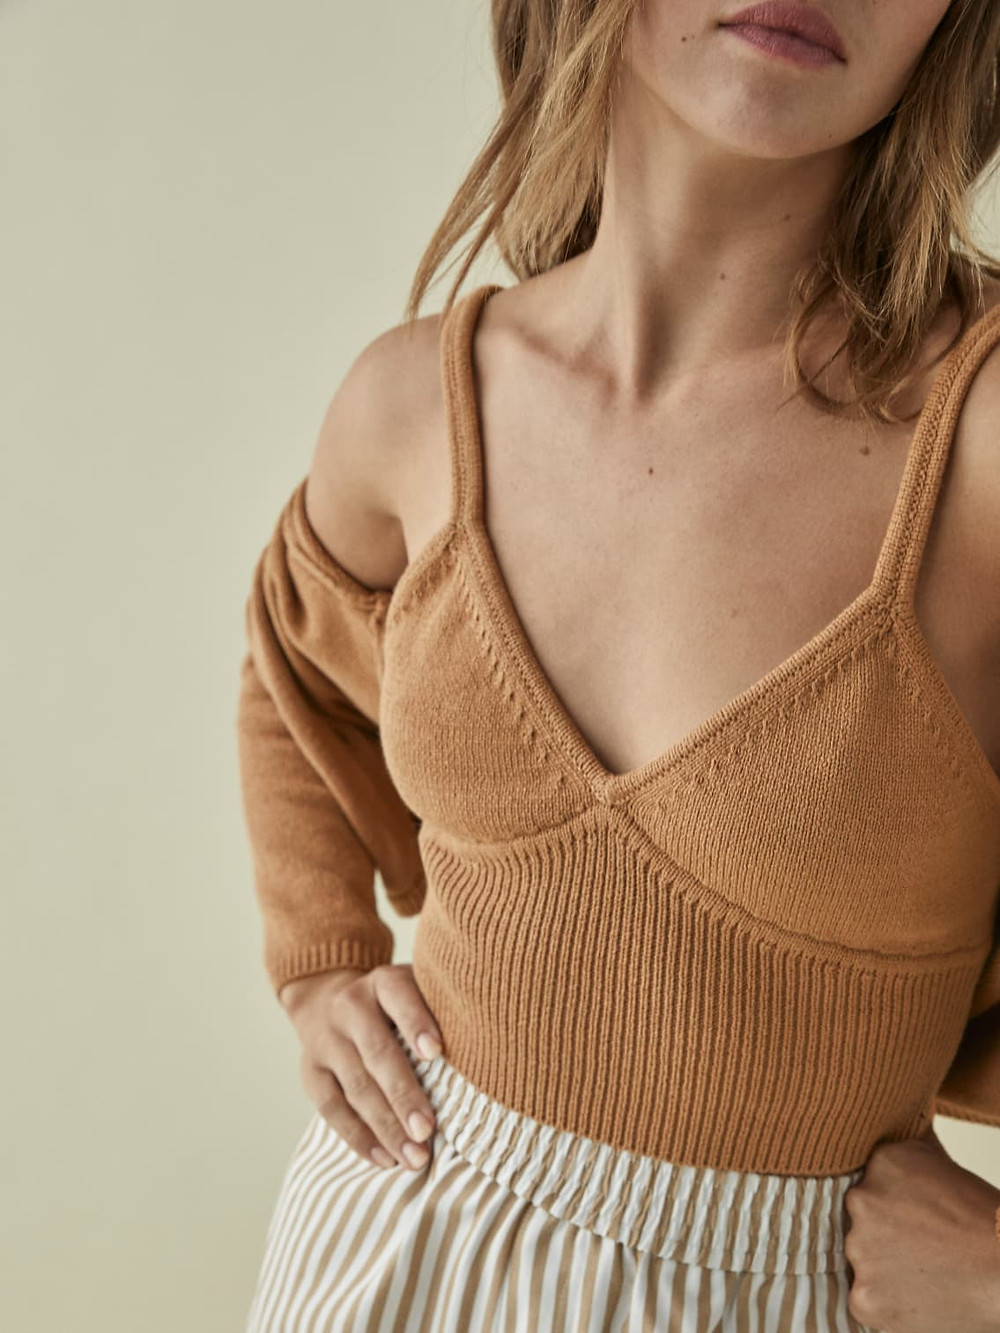 toffee colored sweater set from Reformation worn by model